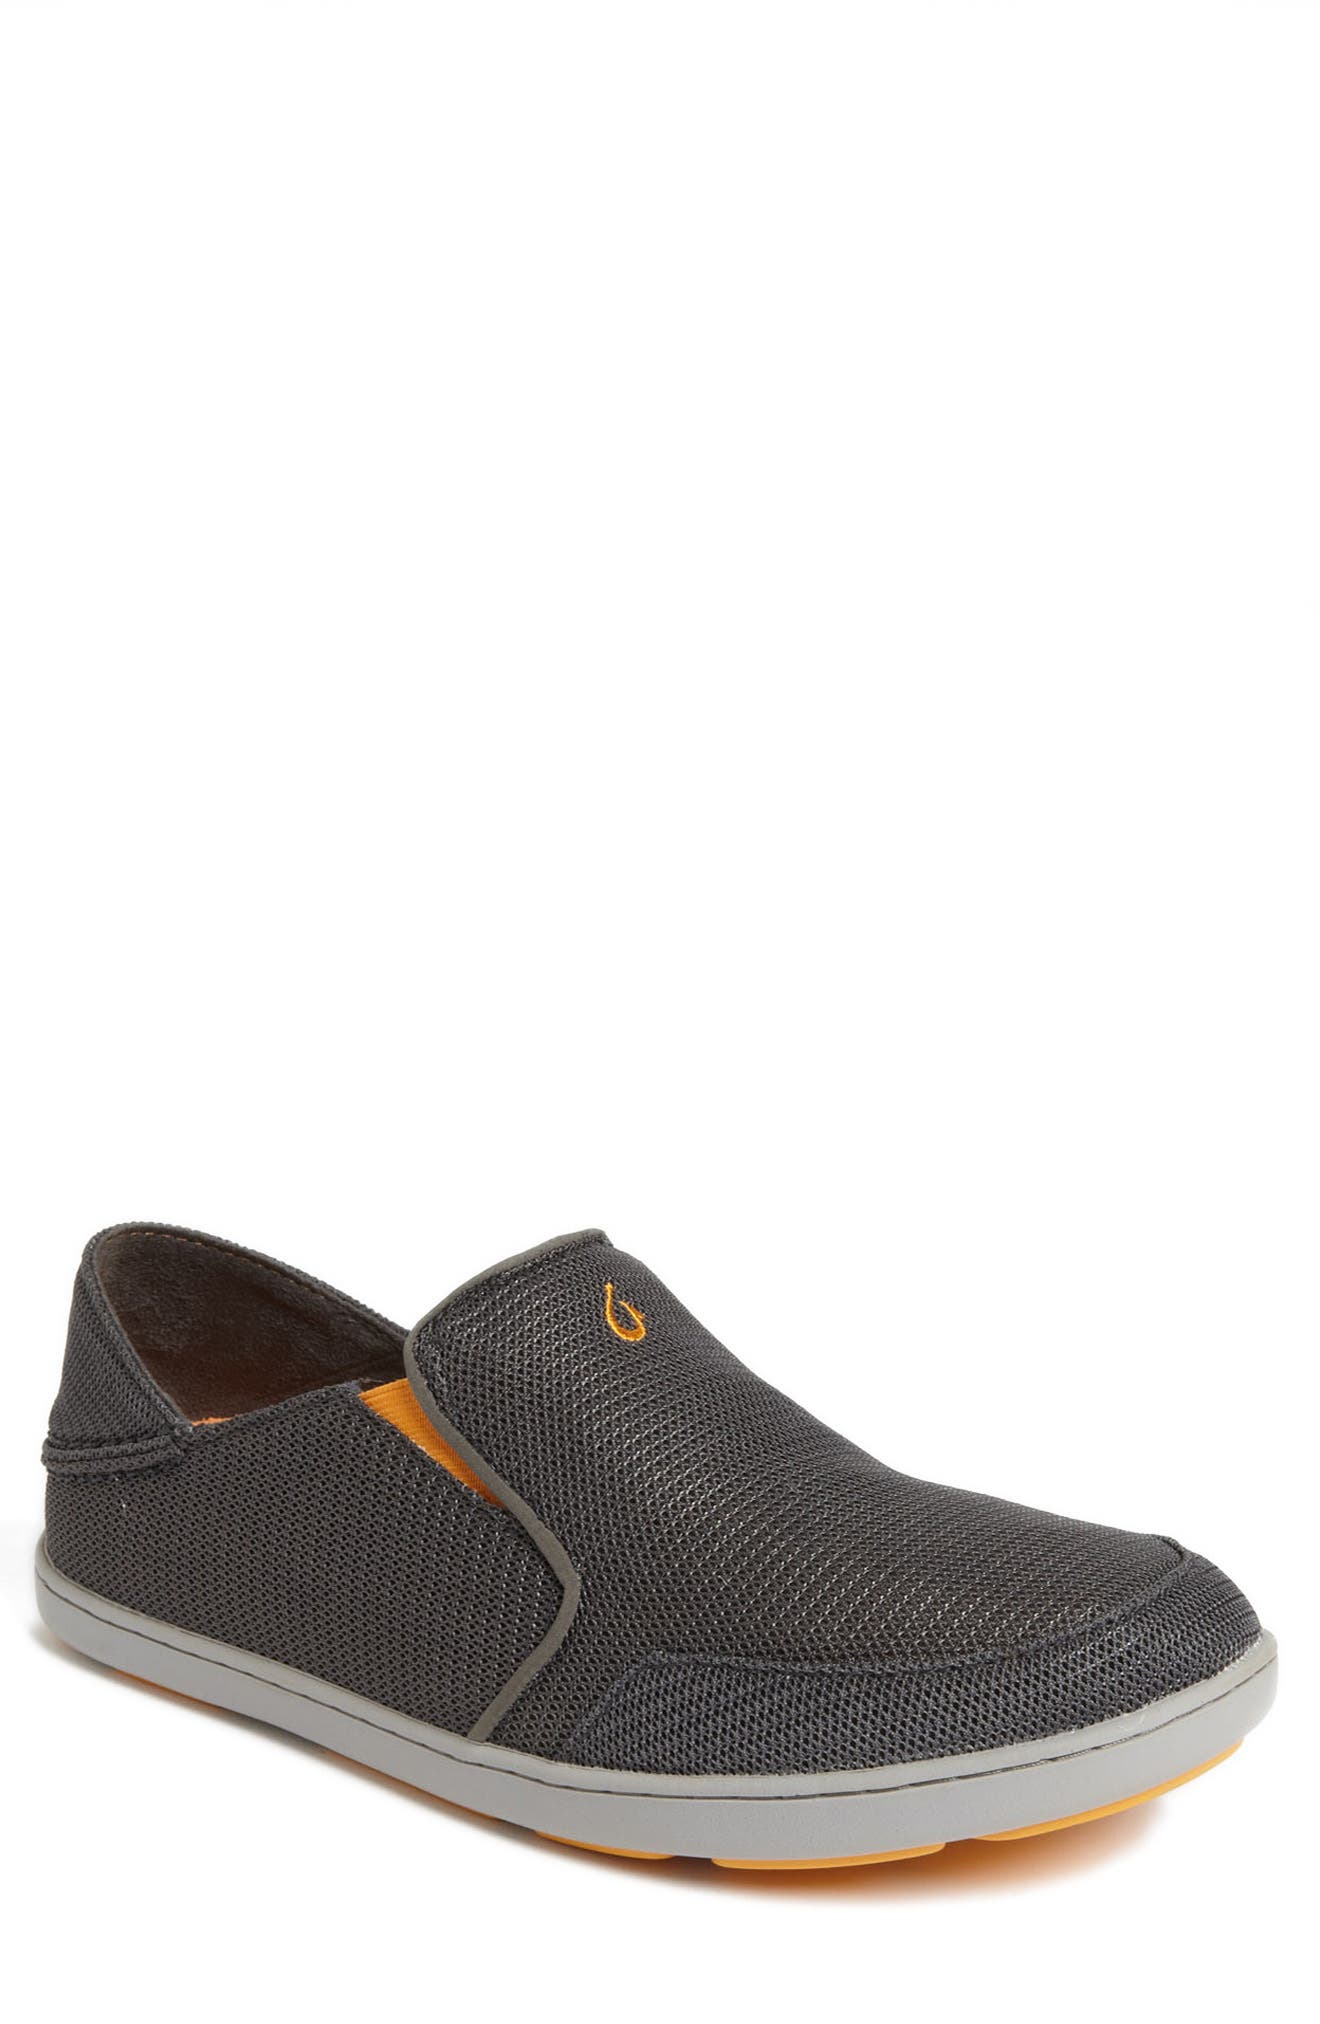 Nohea Mesh Slip-On,                             Main thumbnail 1, color,                             DARK SHADOW/ DARK SHADOW